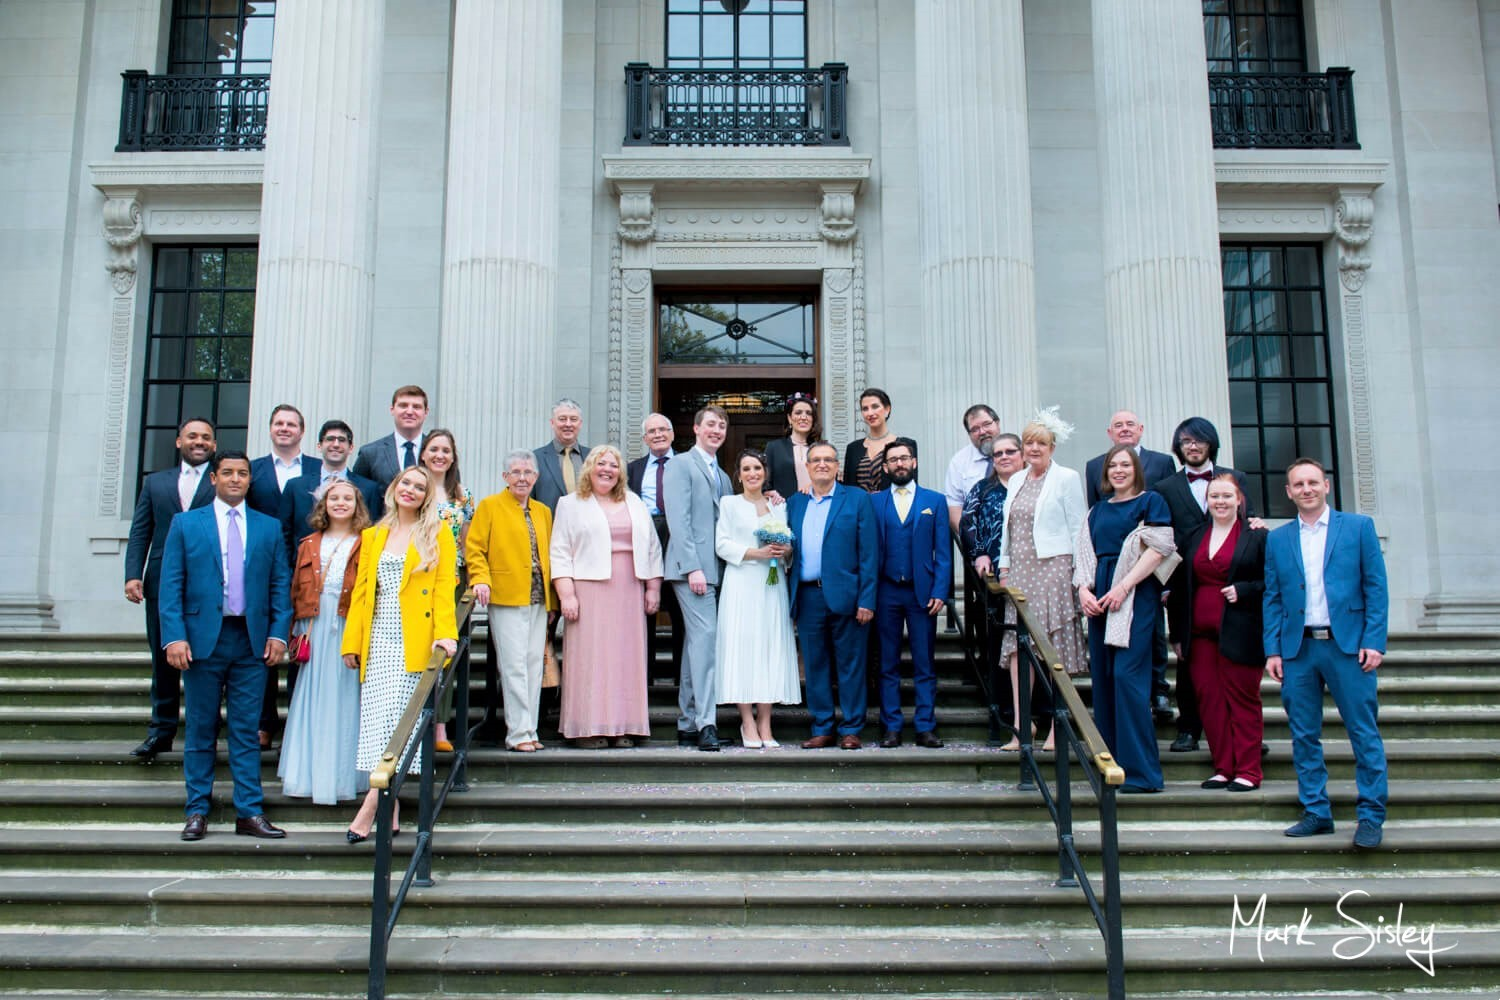 Marylebone Old Town Hall wedding photography group pose on the steps